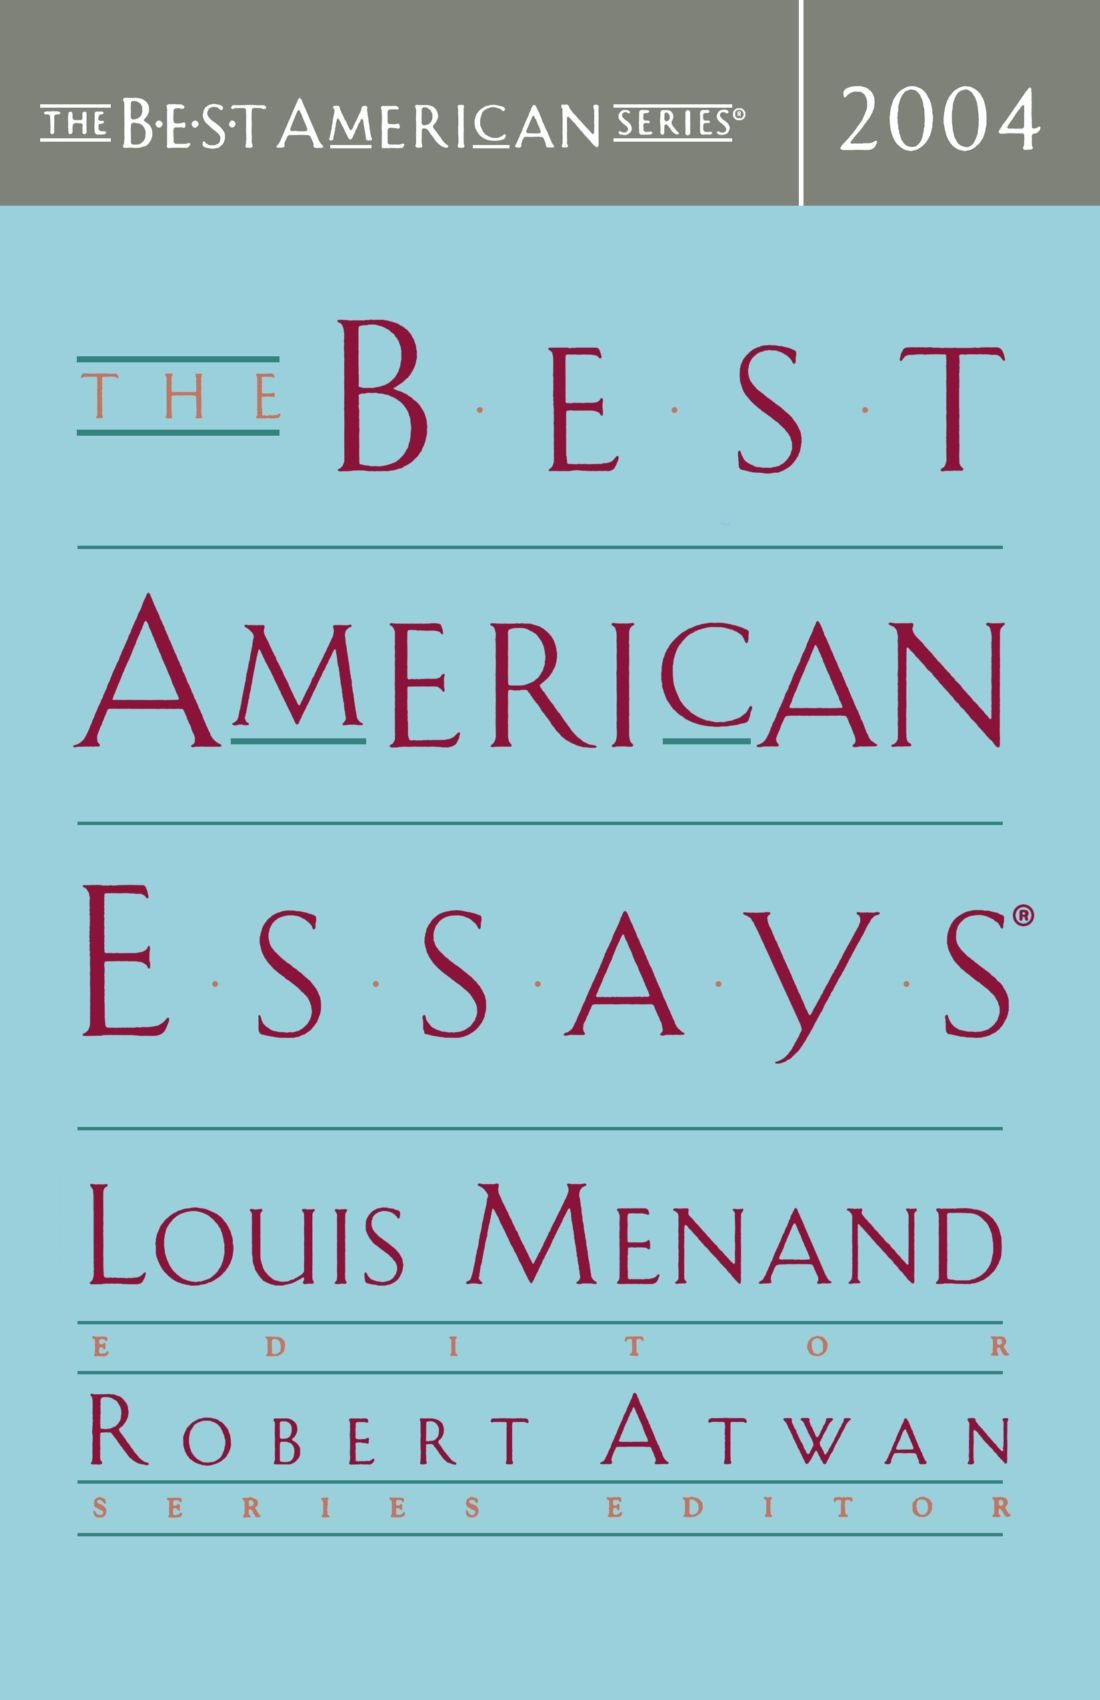 015 Essay Example The Best American Essays Wonderful 2013 Pdf Download Of Century Sparknotes 2017 Full